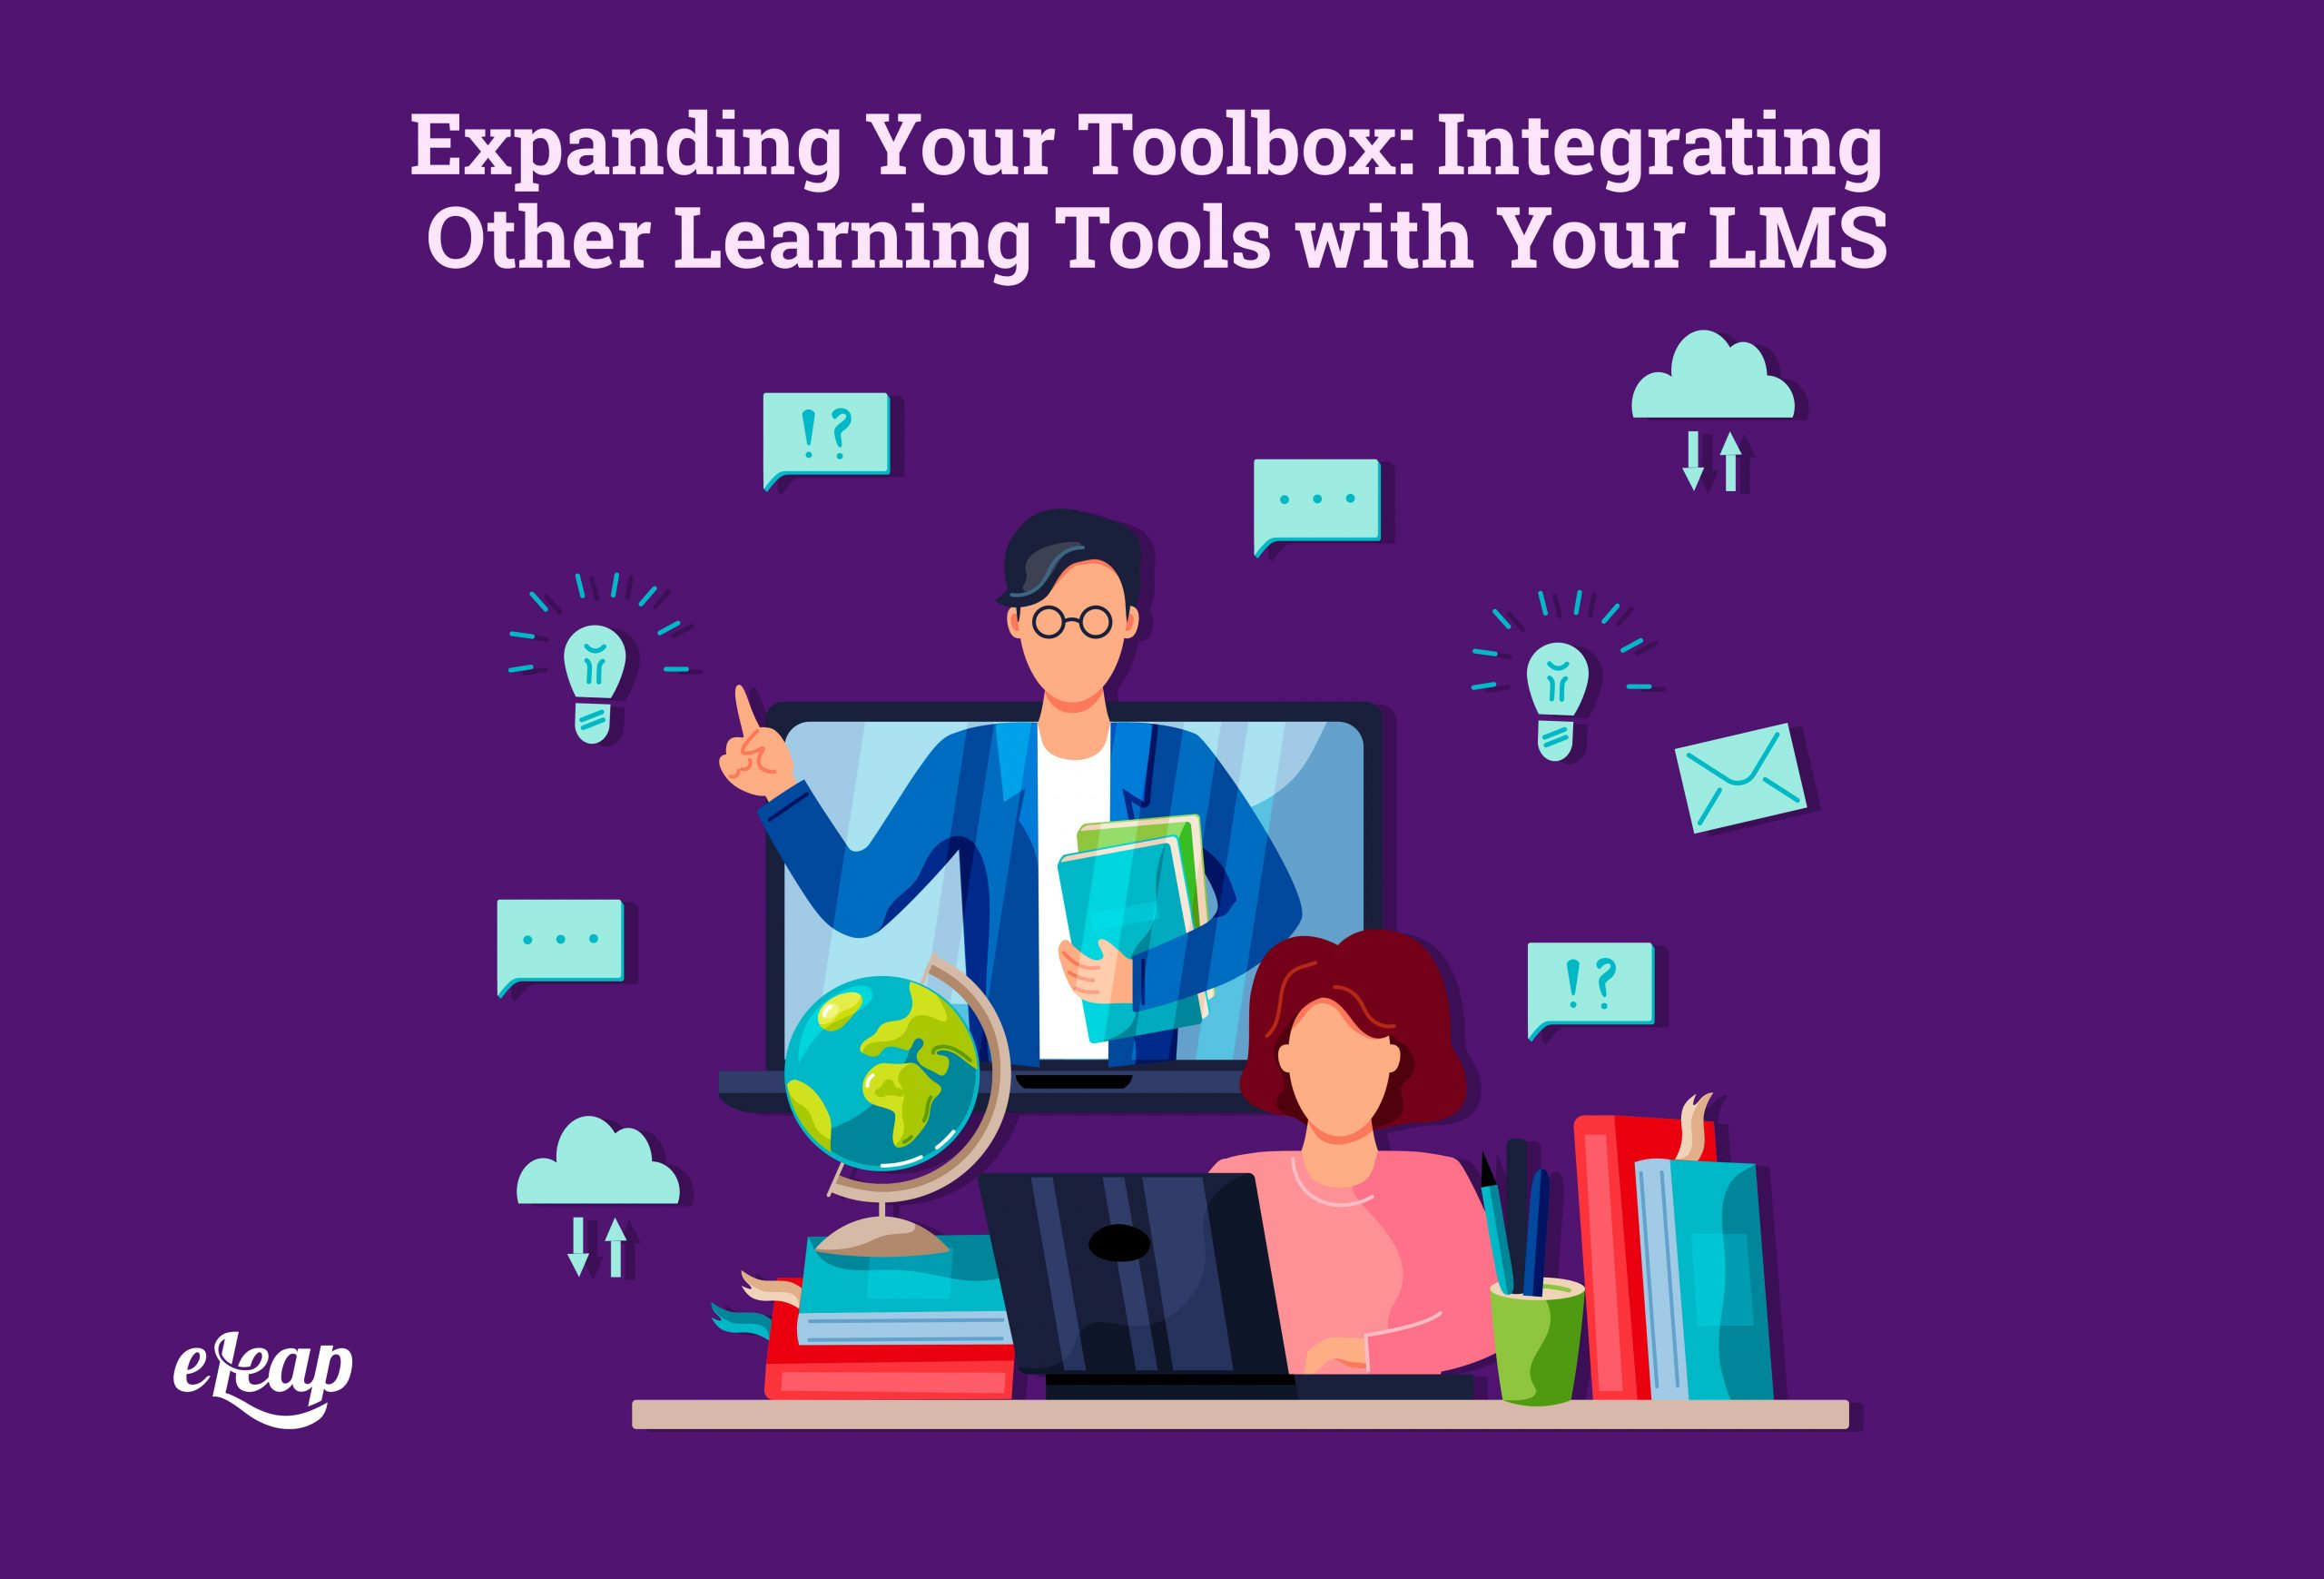 Expanding Your Toolbox: Integrating Other Learning Tools with Your LMS